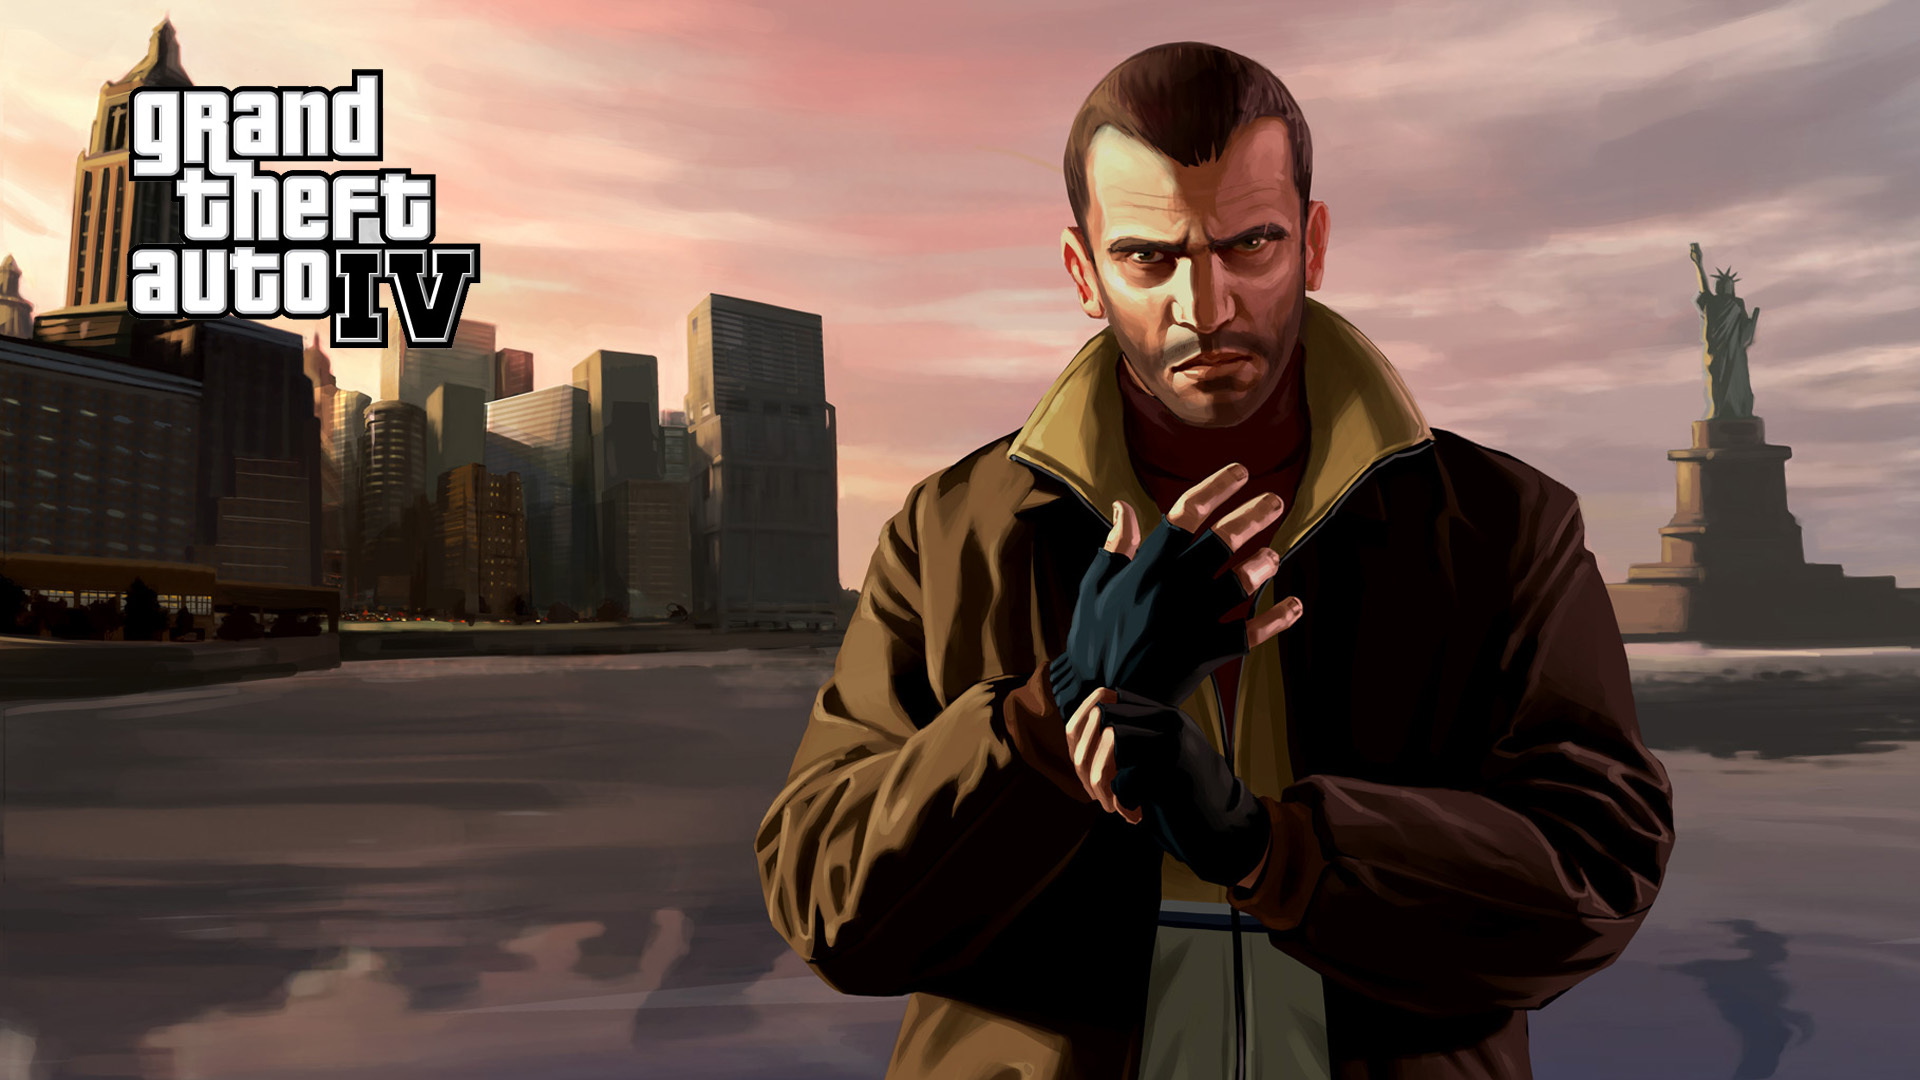 GTAIV Hooker Submitted by Waggly Bean